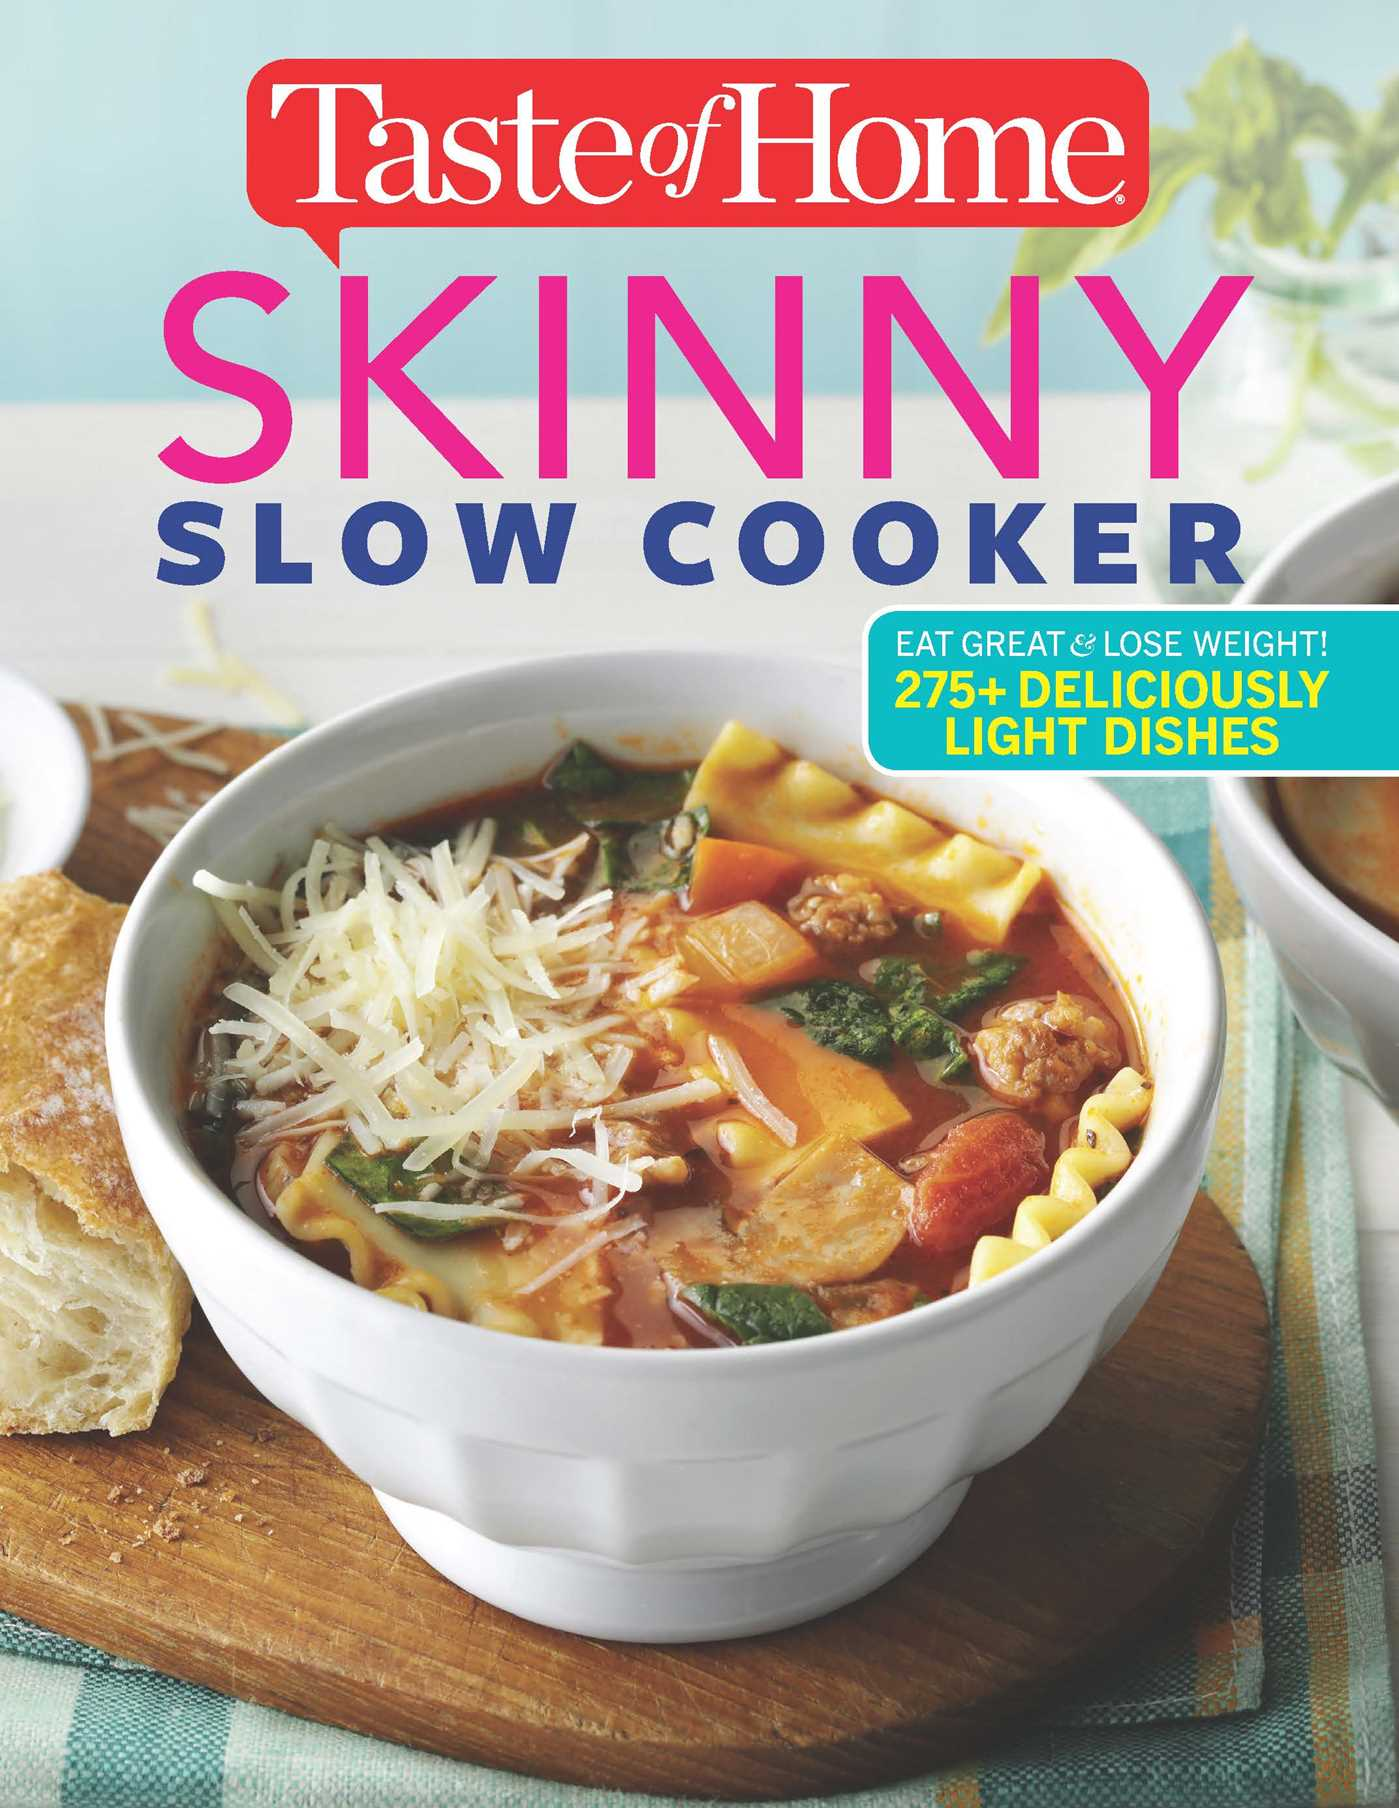 11 Low-Fat Slow Cooker Recipes for Weight Watchers photo